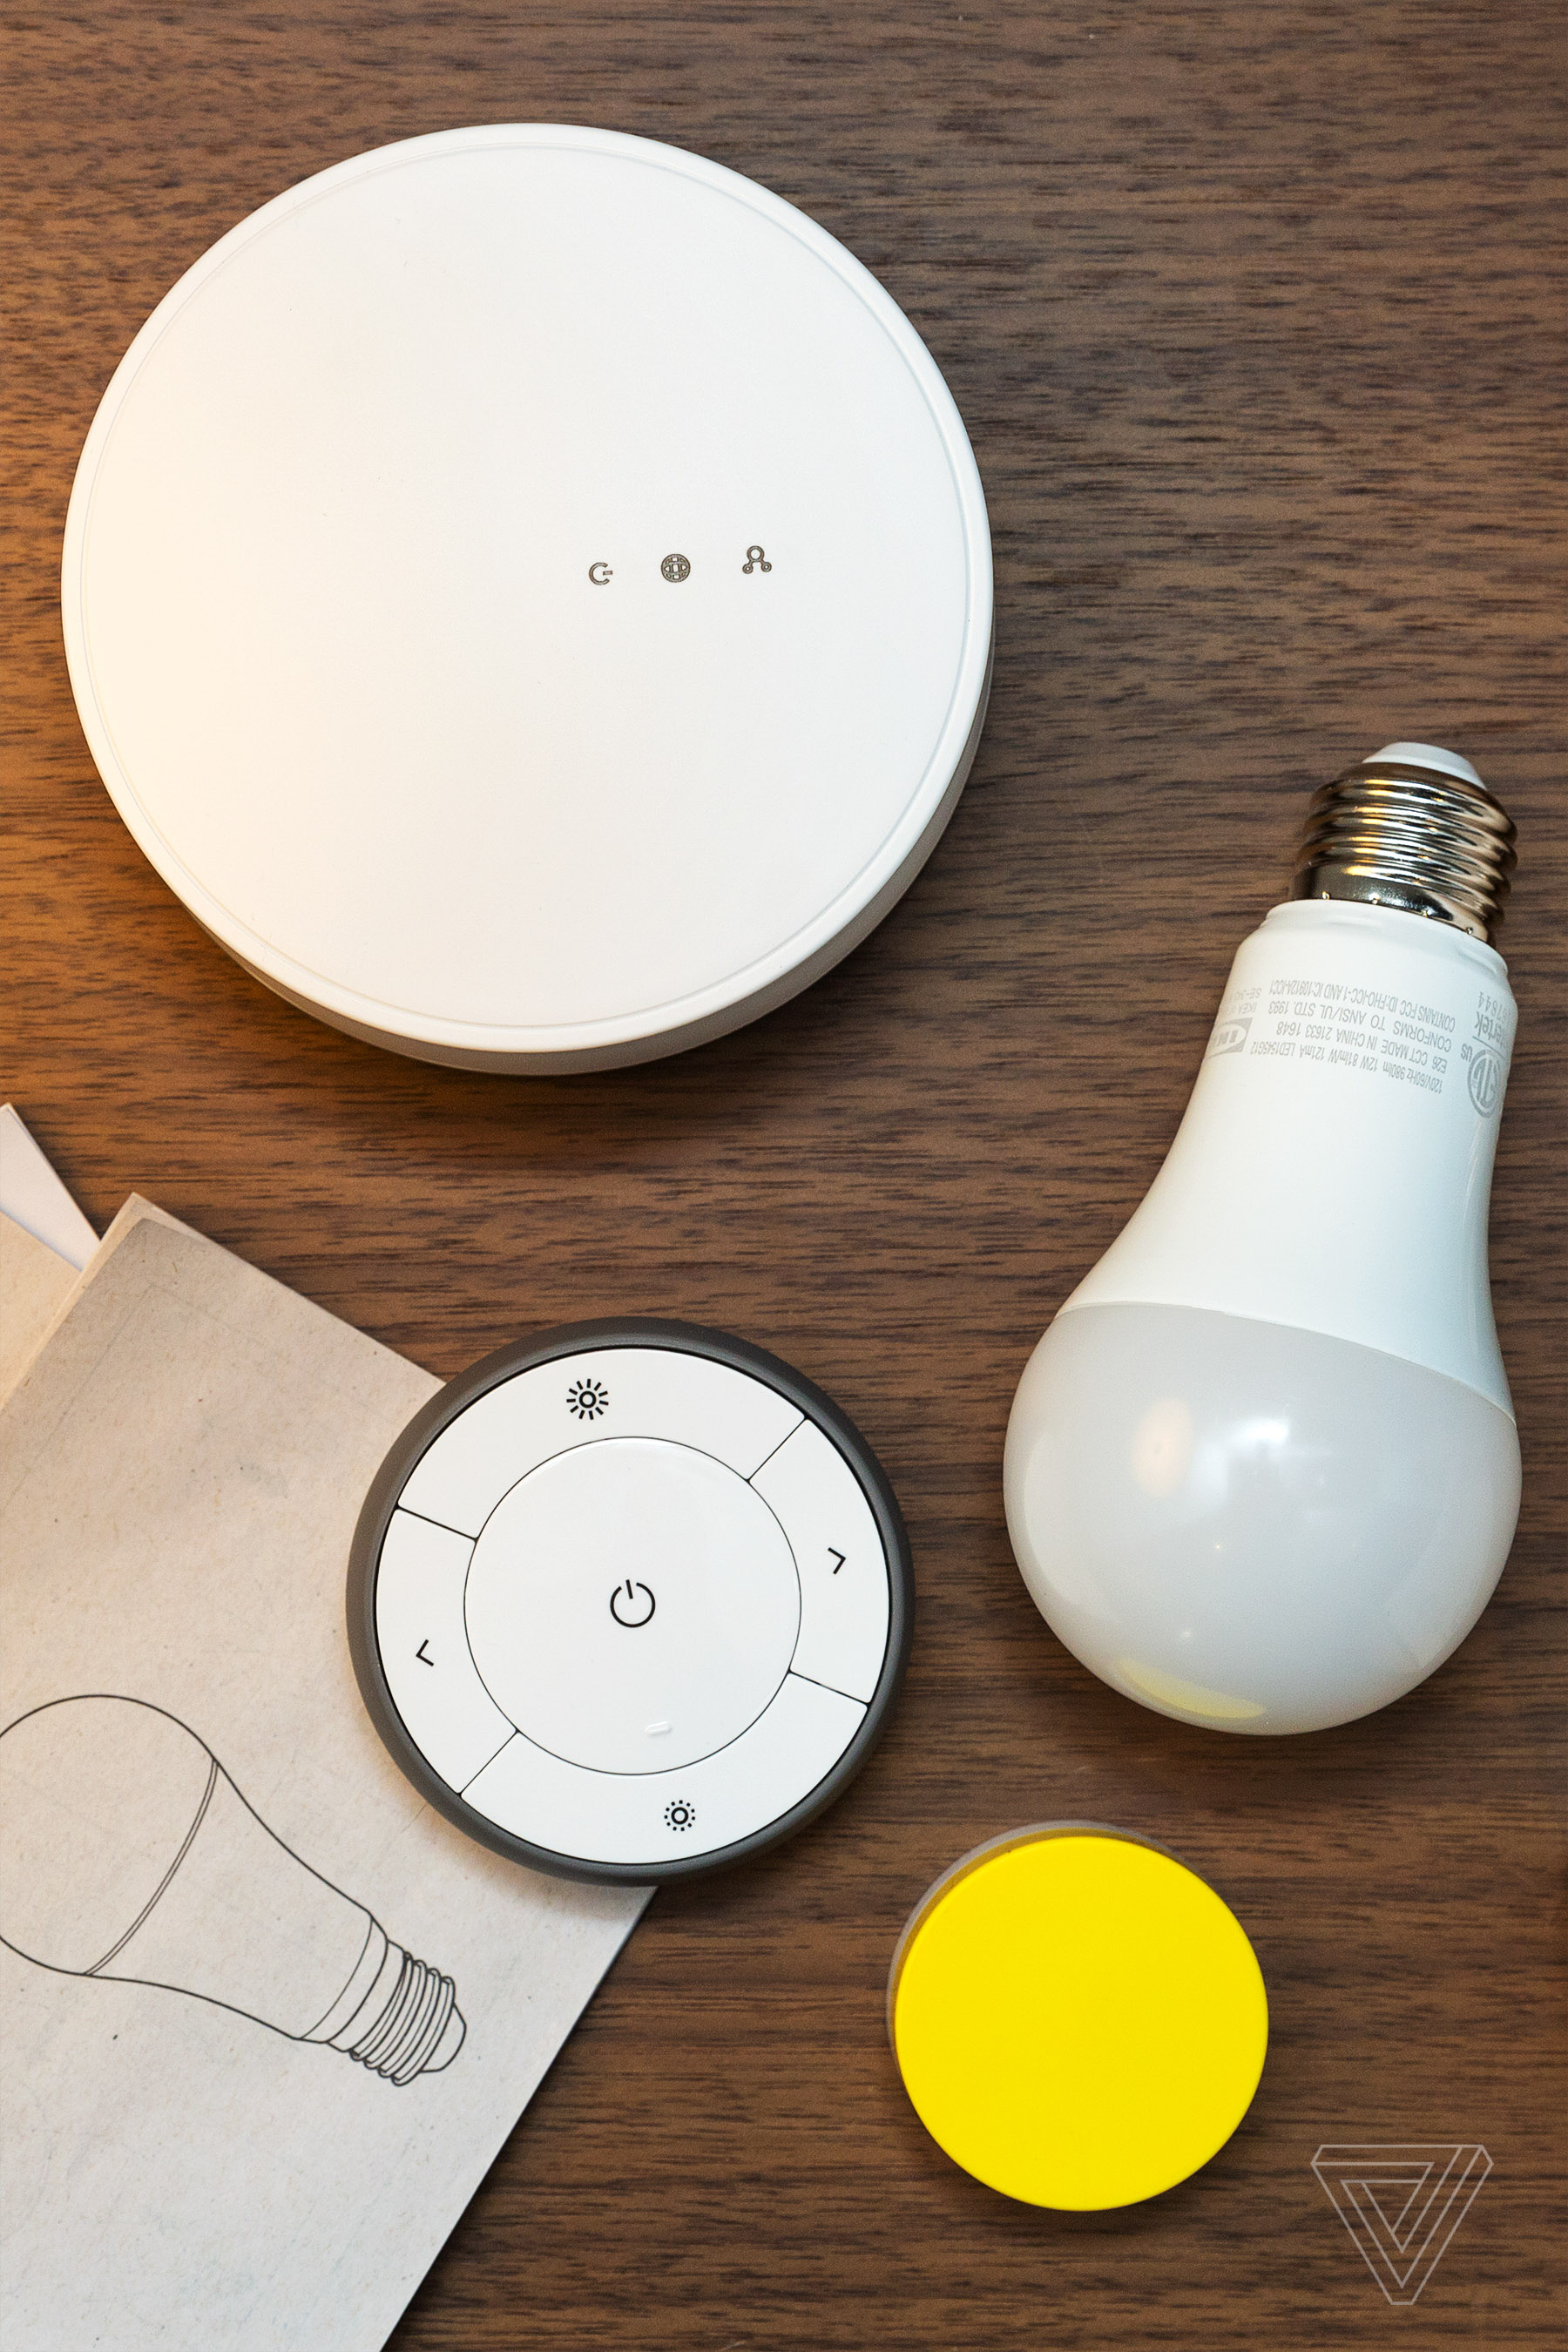 Ikea s smart lights are as stylish and breakable as its furniture